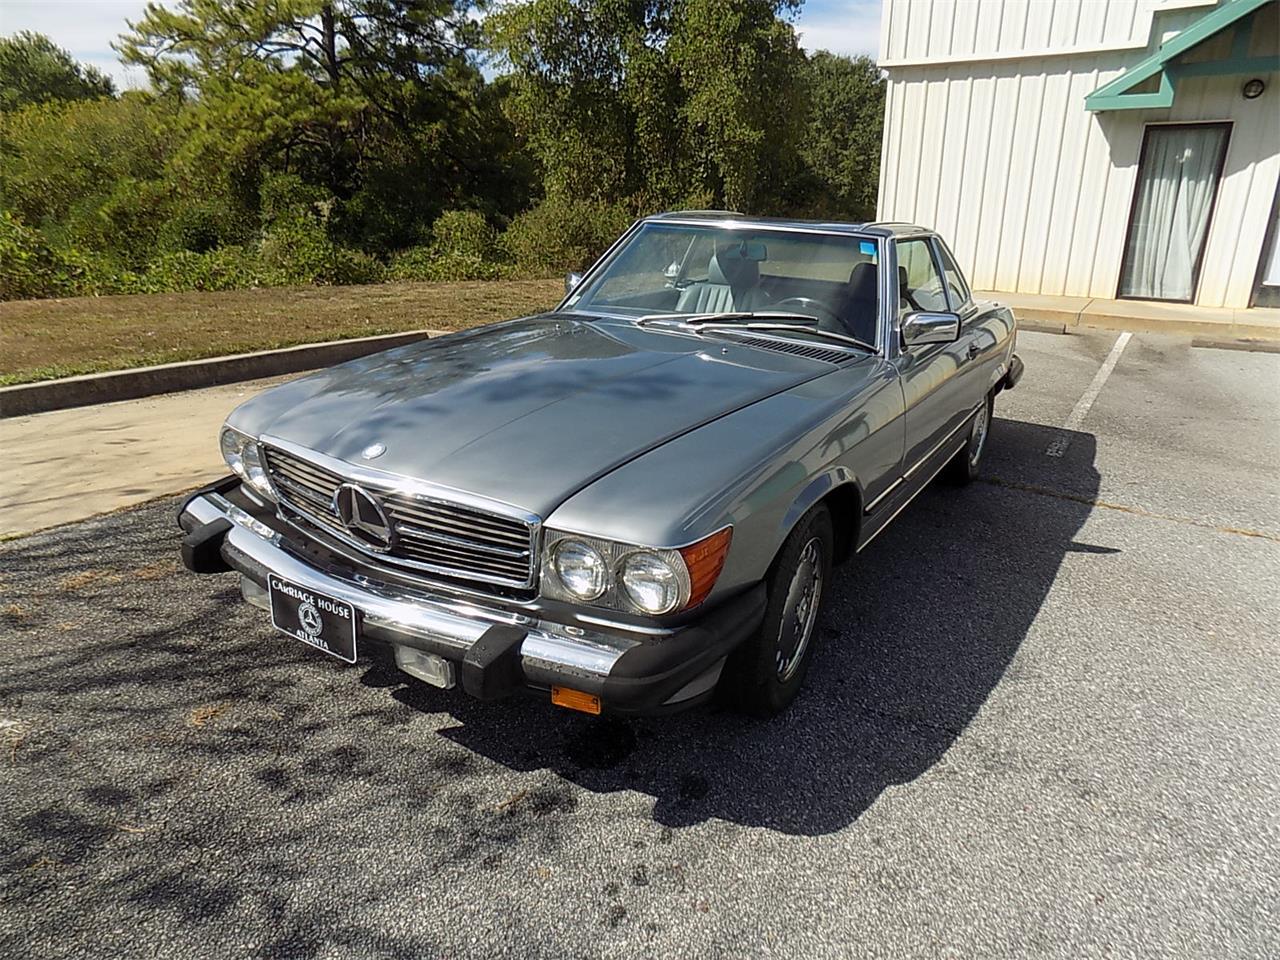 1989 Mercedes-Benz 560SL (CC-1272959) for sale in Lawrenceville, Georgia